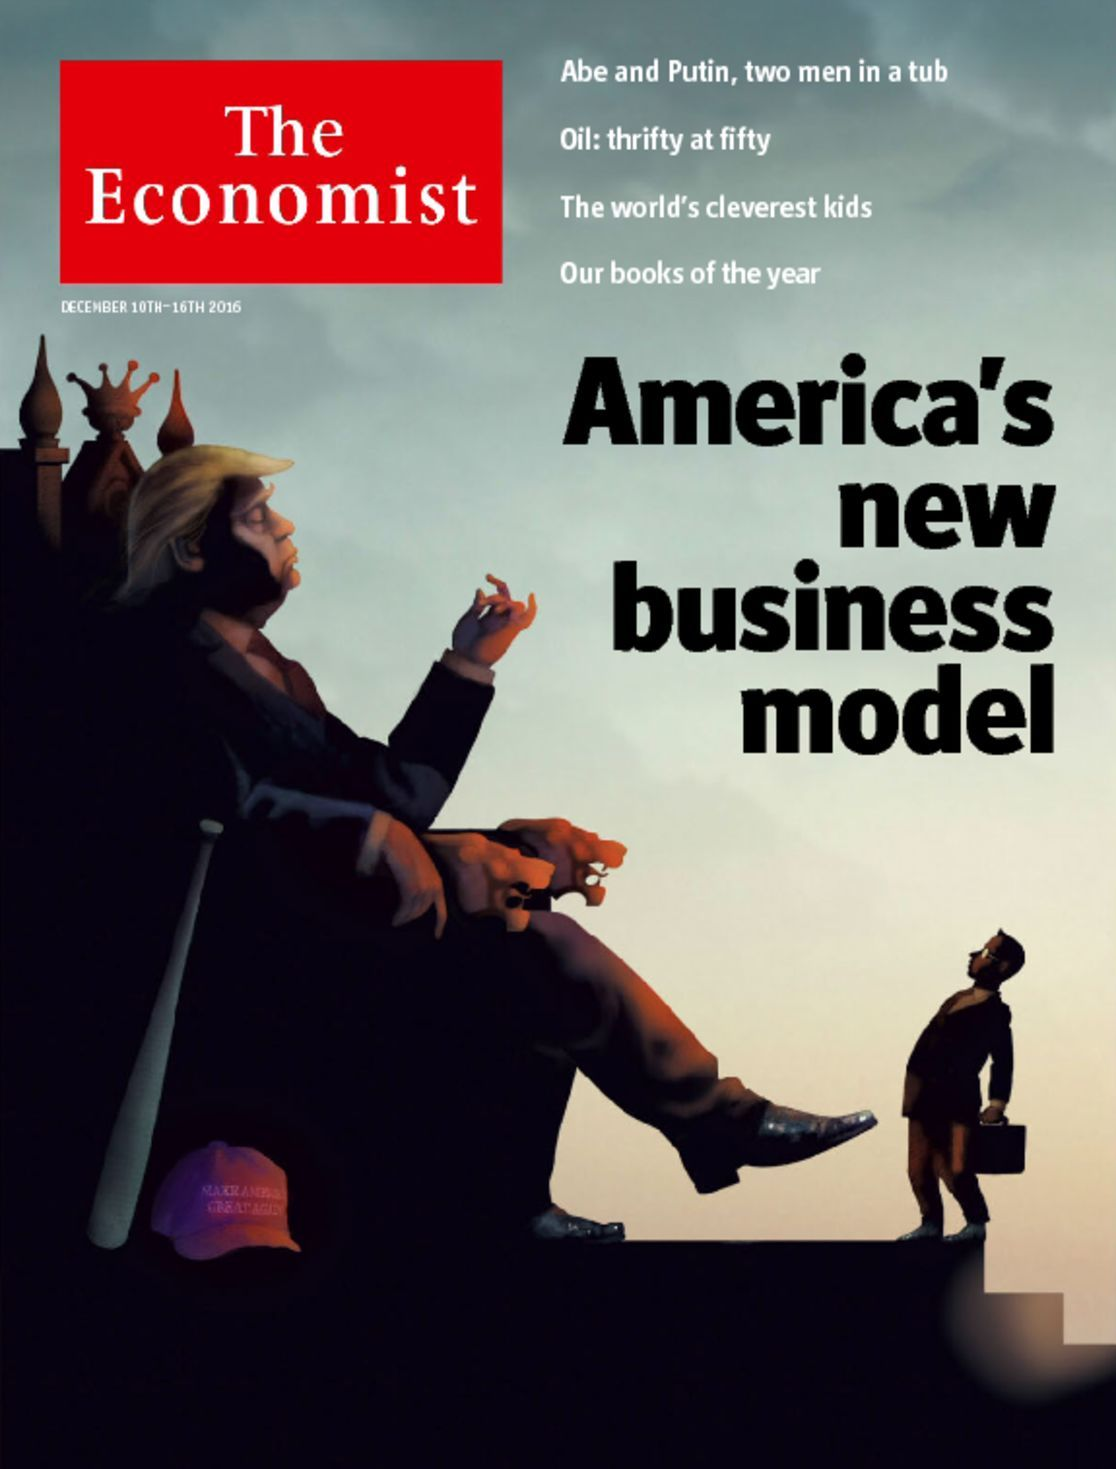 The Economist Magazine - DiscountMags.com